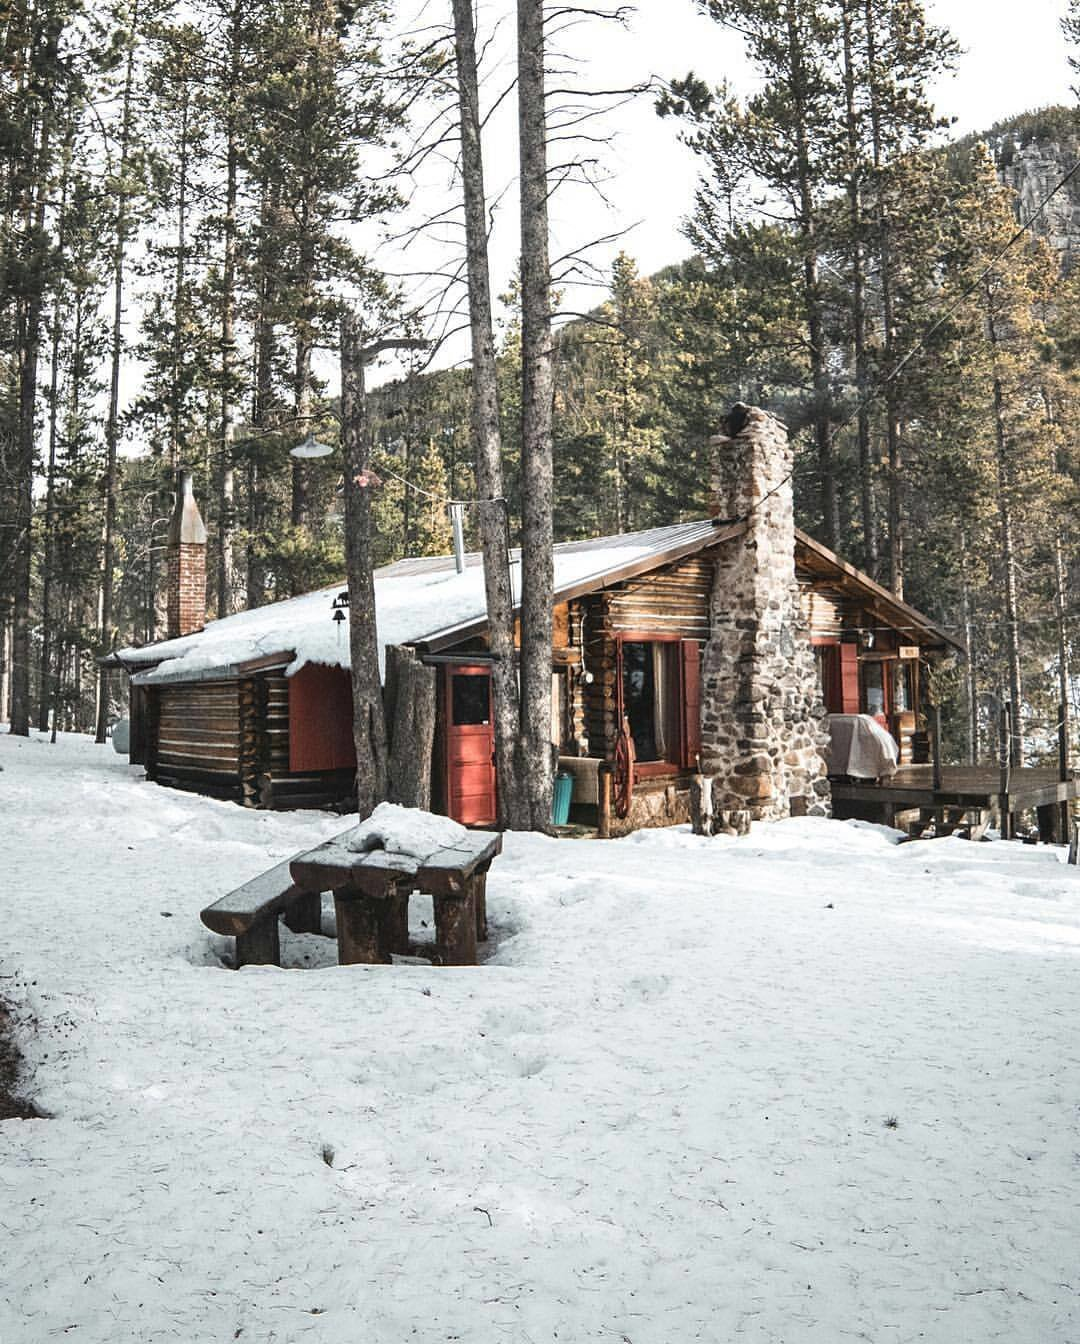 Photo 6 of 14 in 12 Cabin Escapes to Inspire Your Next Weekend Getaway